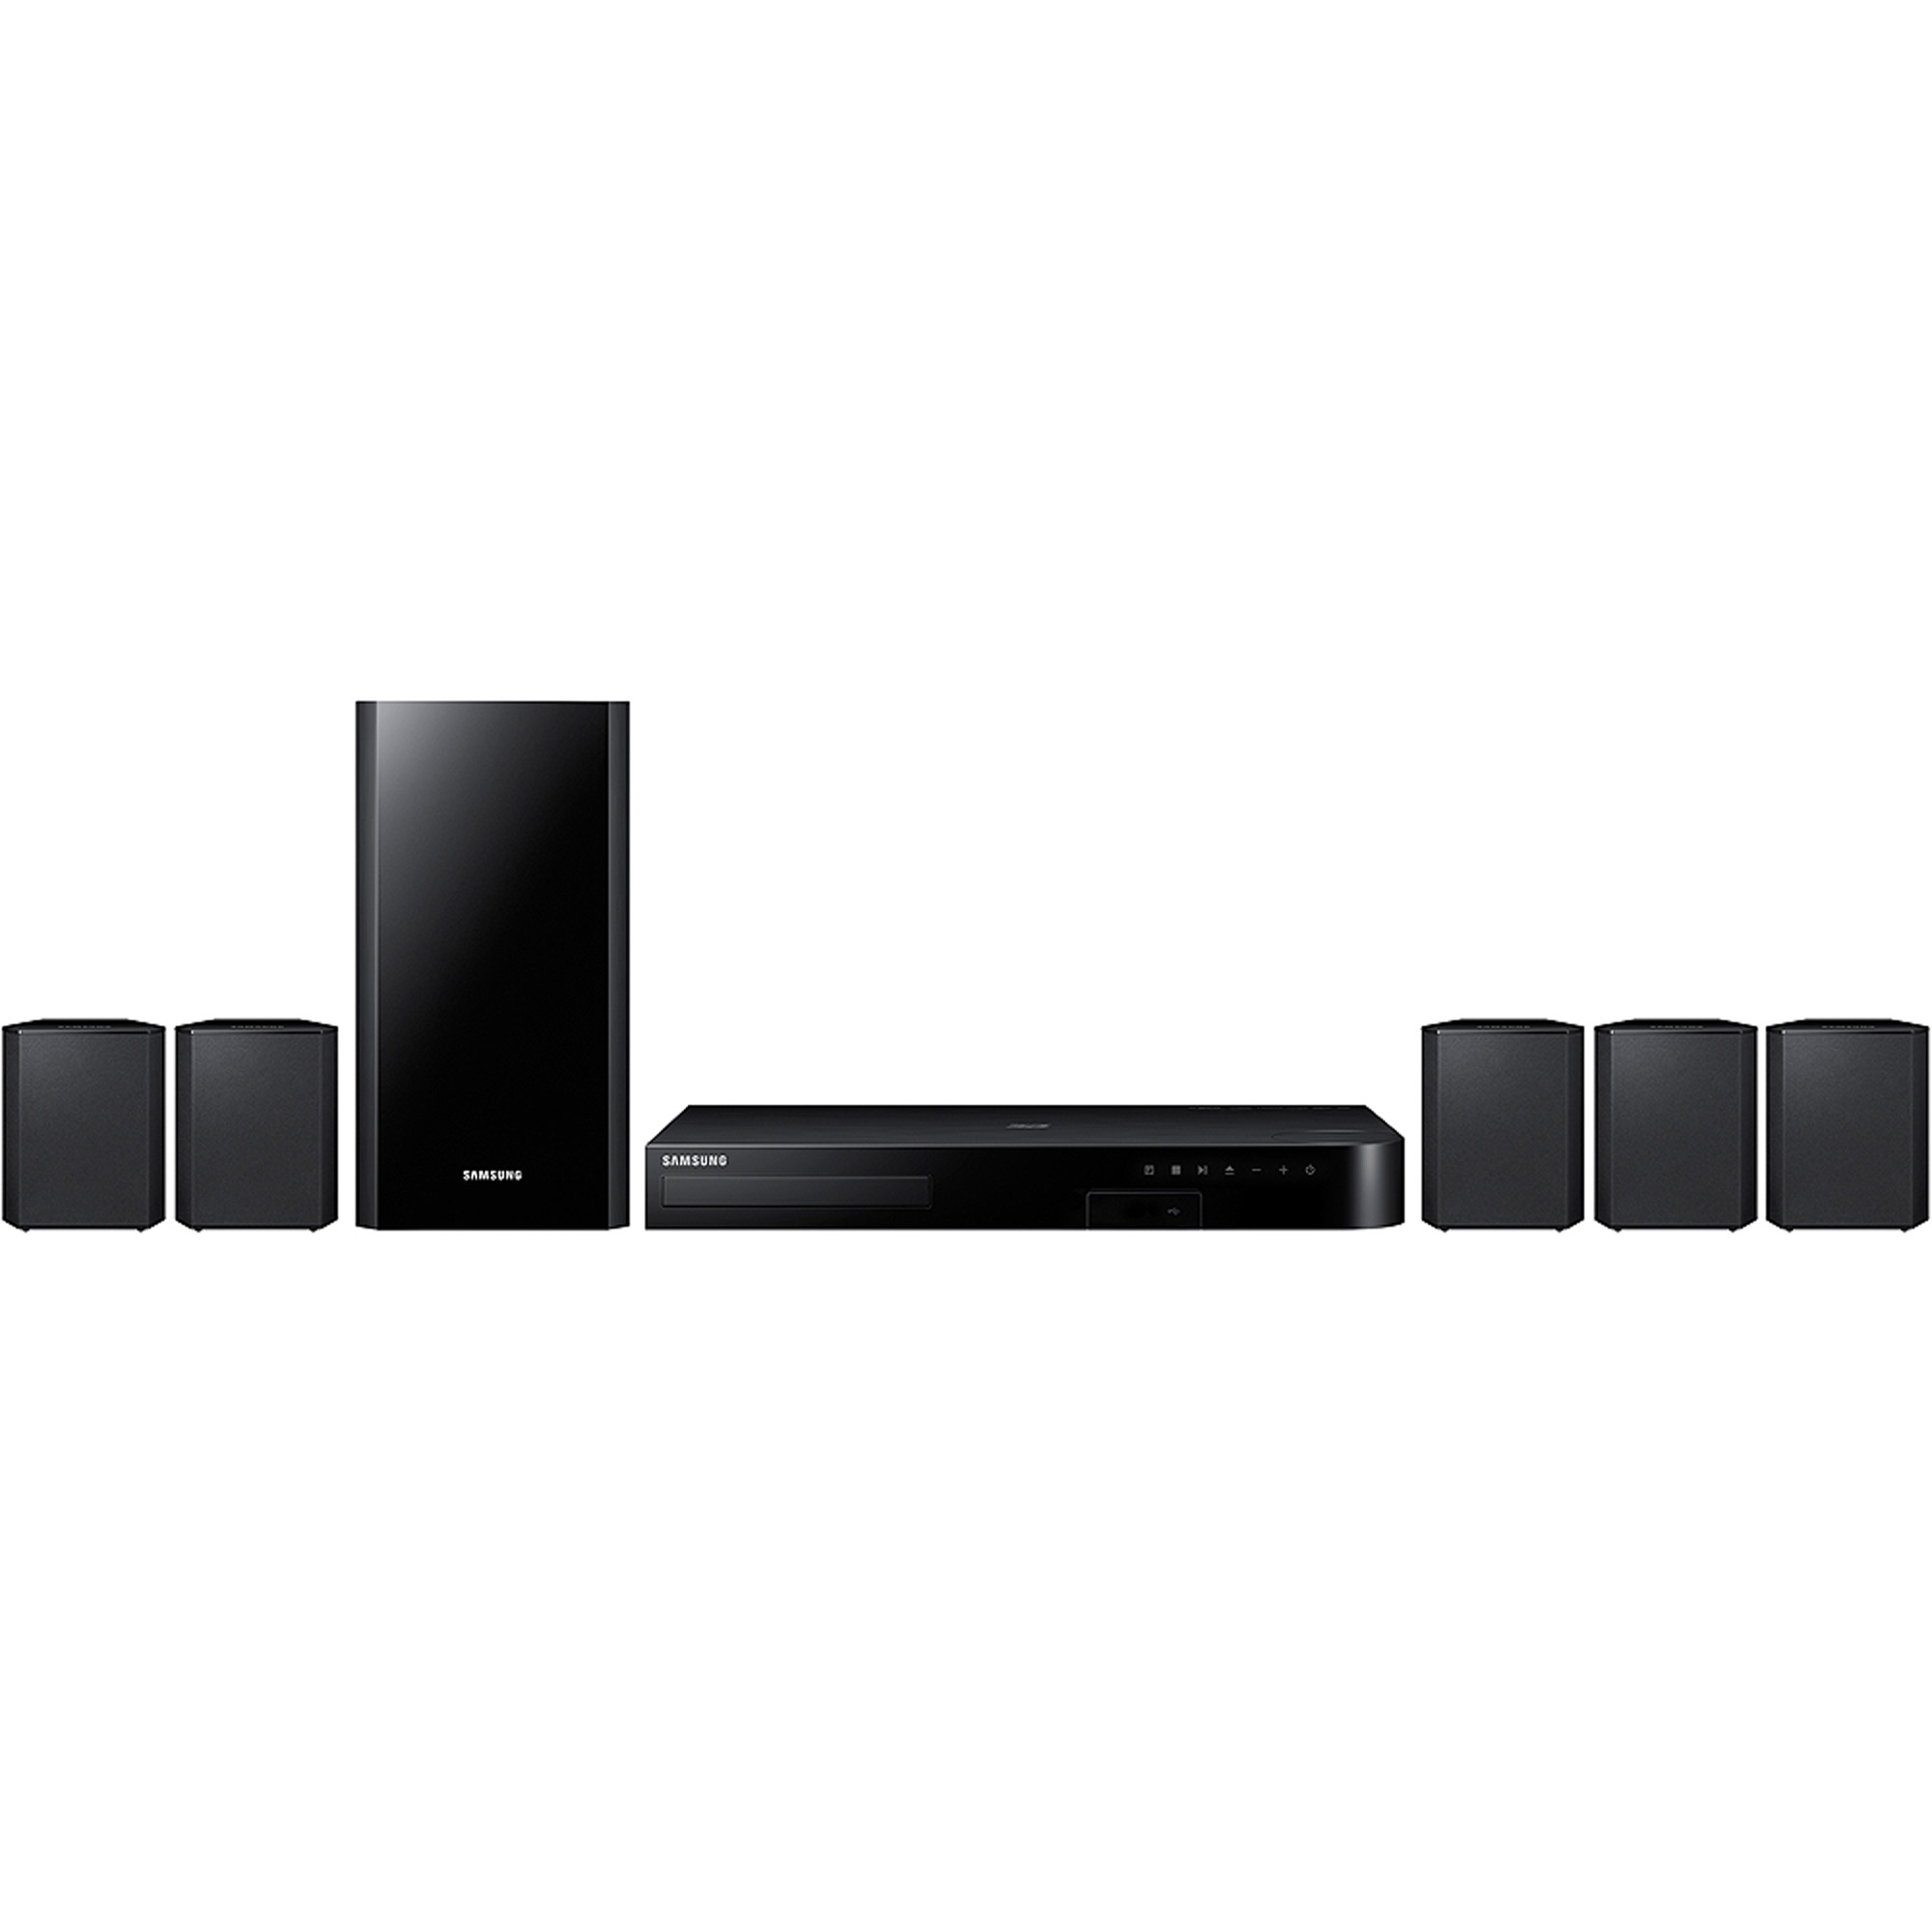 SAMSUNG 5.1 Channel 500W Home Theater System with Blu-Ray & DVD Player - HT-J4500